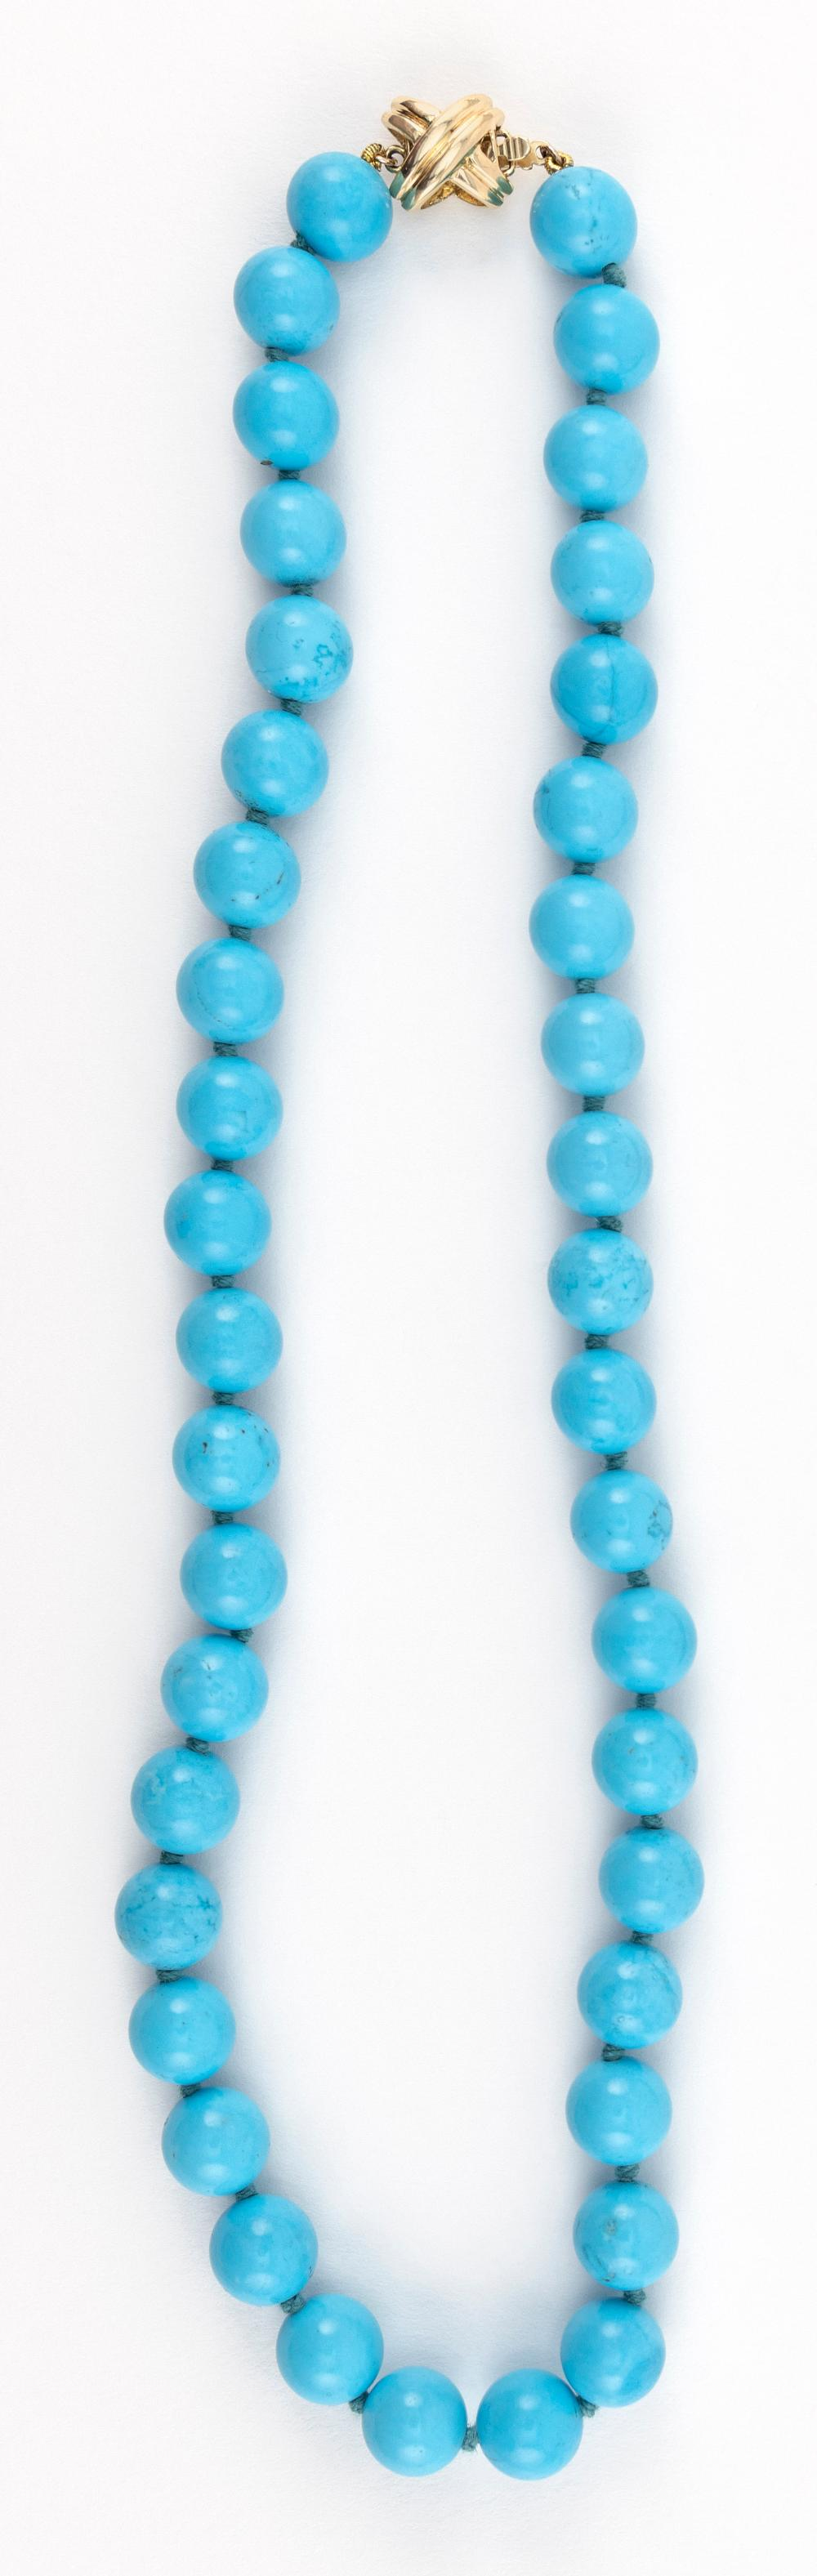 """TIFFANY & CO. """"SIGNATURE X"""" 18KT GOLD AND TURQUOISE BEAD NECKLACE"""